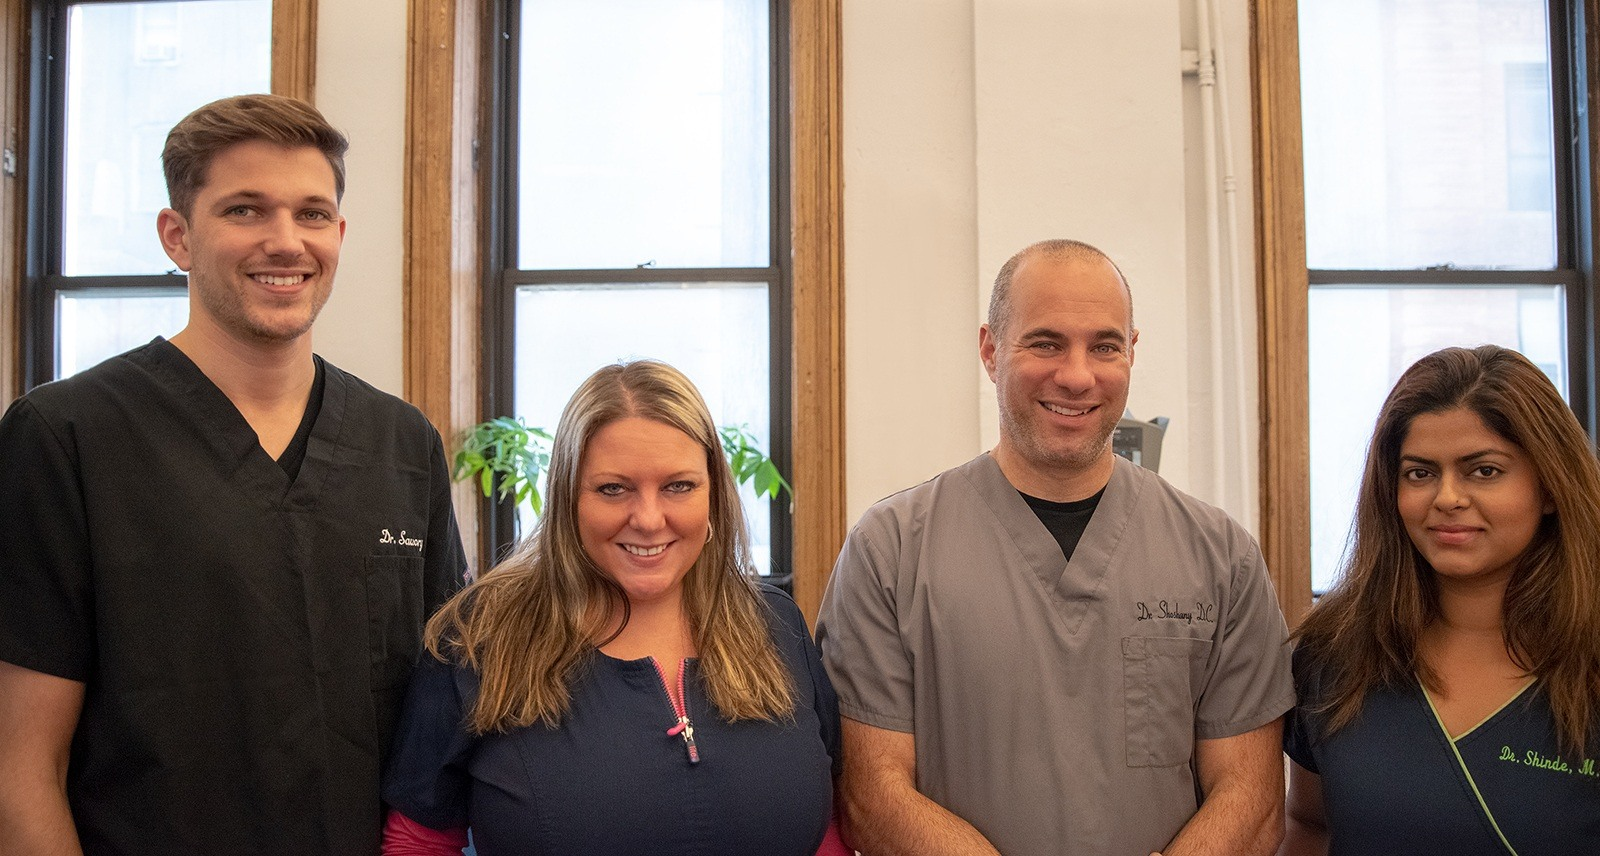 Dr Steven Shoshany Chiropractor and his team of specialists include NYC chiropractors a physical therapist massage therapist acupuncturist providing integrated non-surgical pain drx 9000 spinal decompression relief from sciatica herniated disc neck pain and sports related injuries